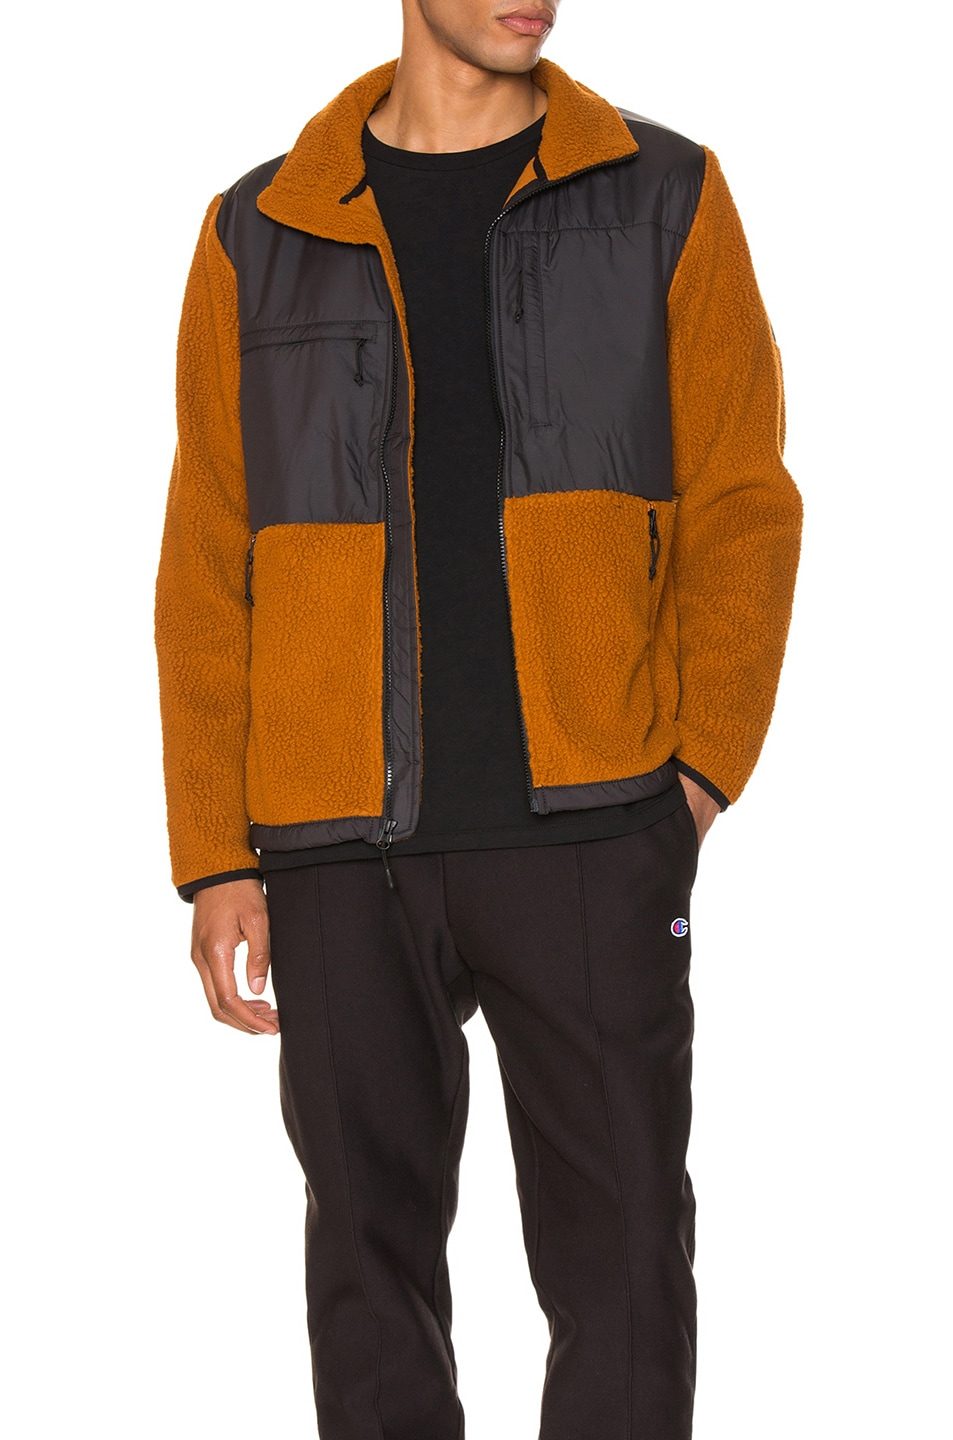 Image 1 of The North Face Black Box Denali Fleece Jacket in Caramel Cafe & TNF Black